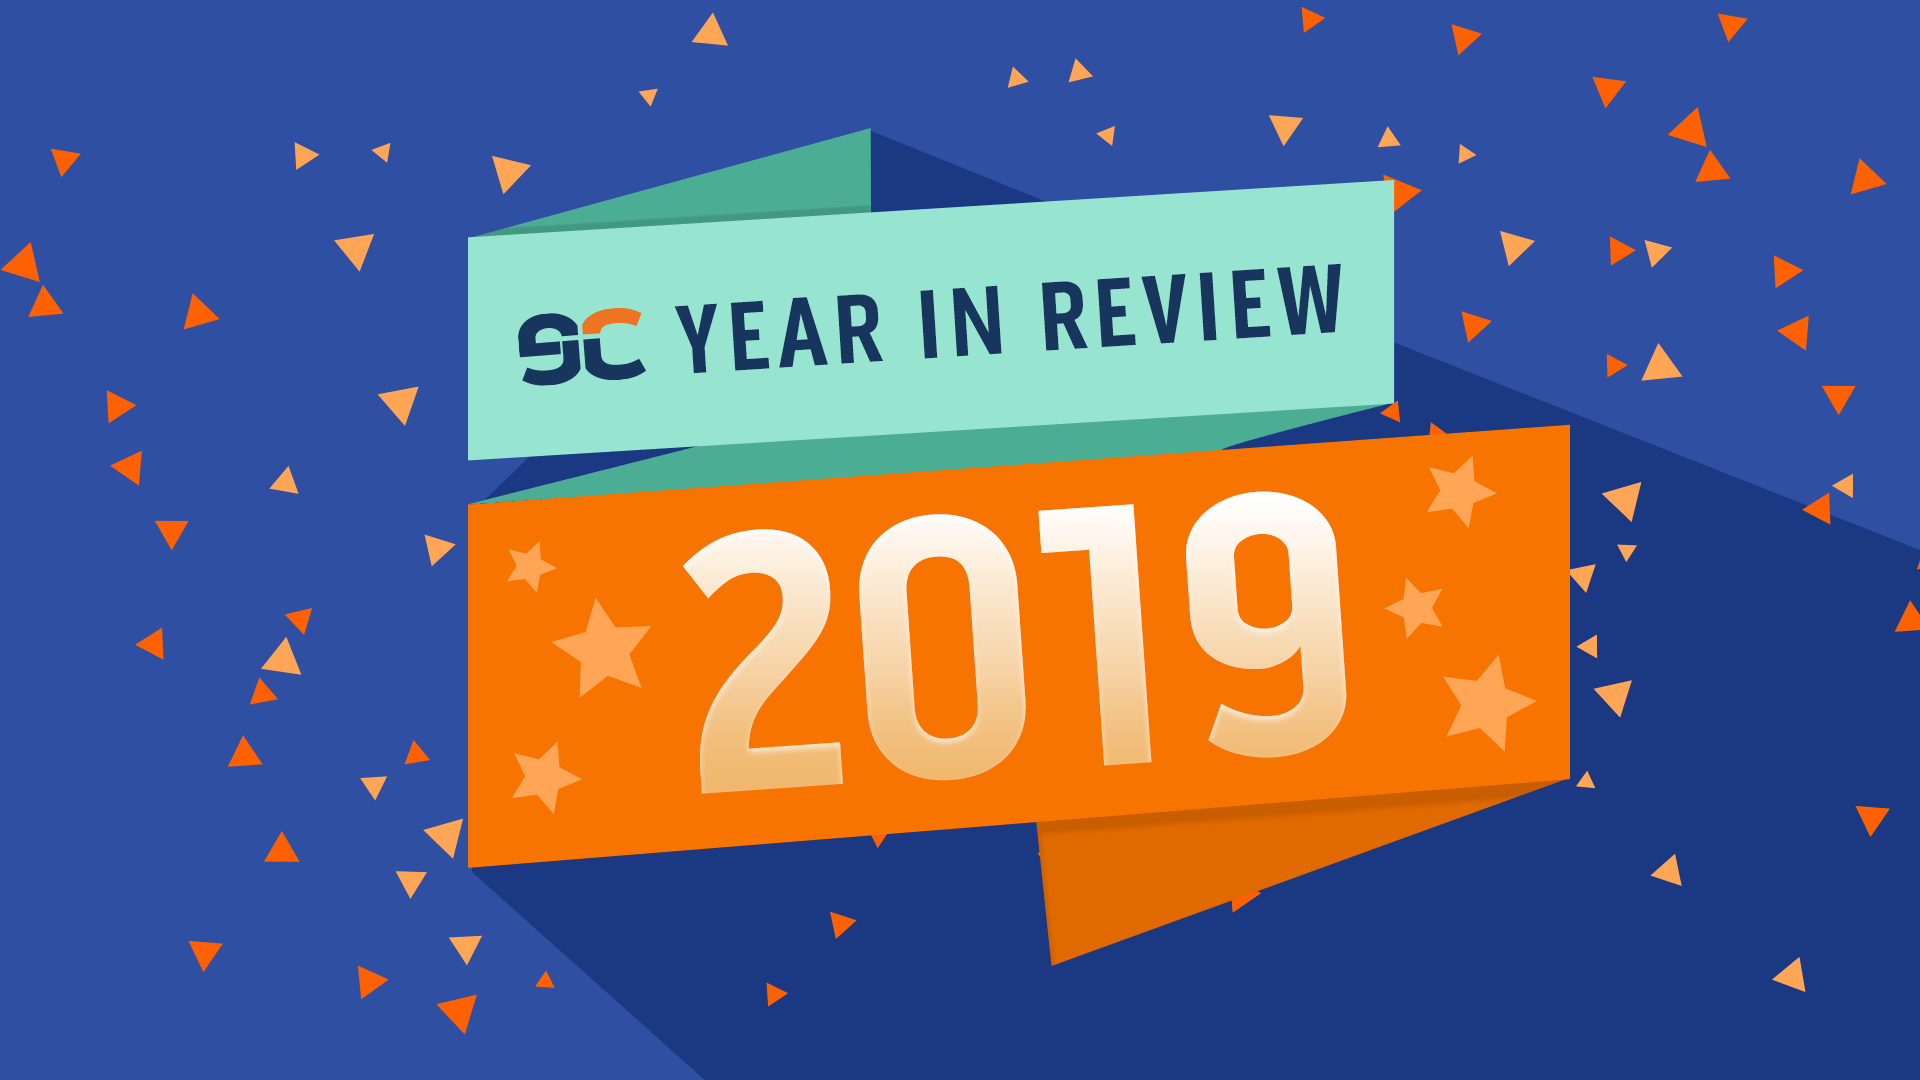 eCatholic Year in Review 2019: Major steps for the movement